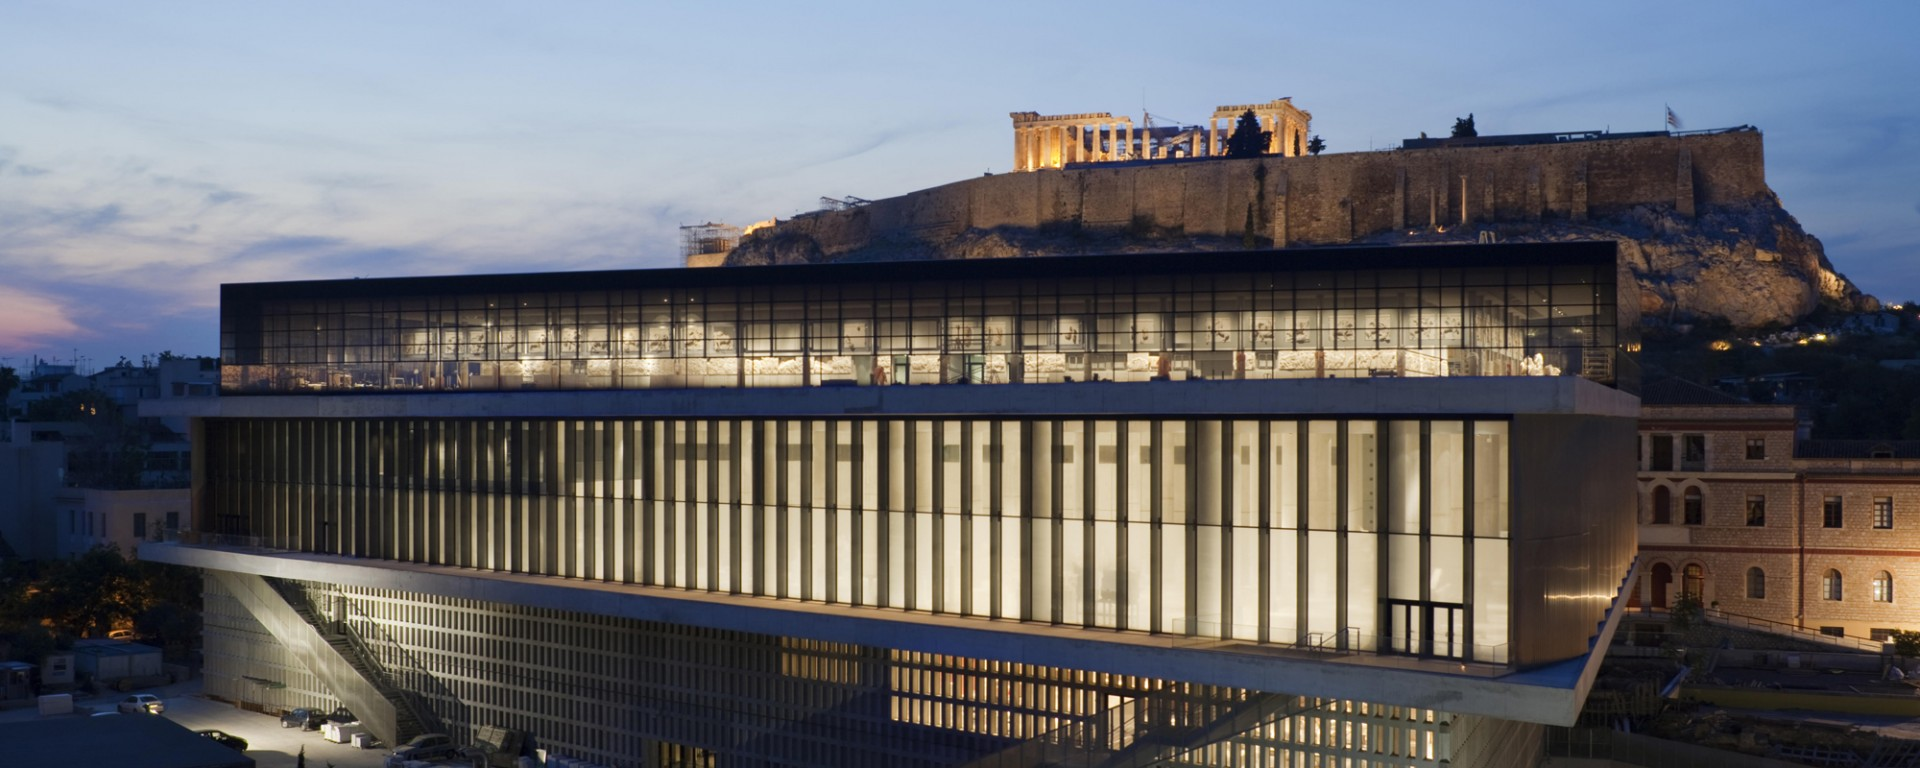 A Tour In Acropolis Museum, Greece